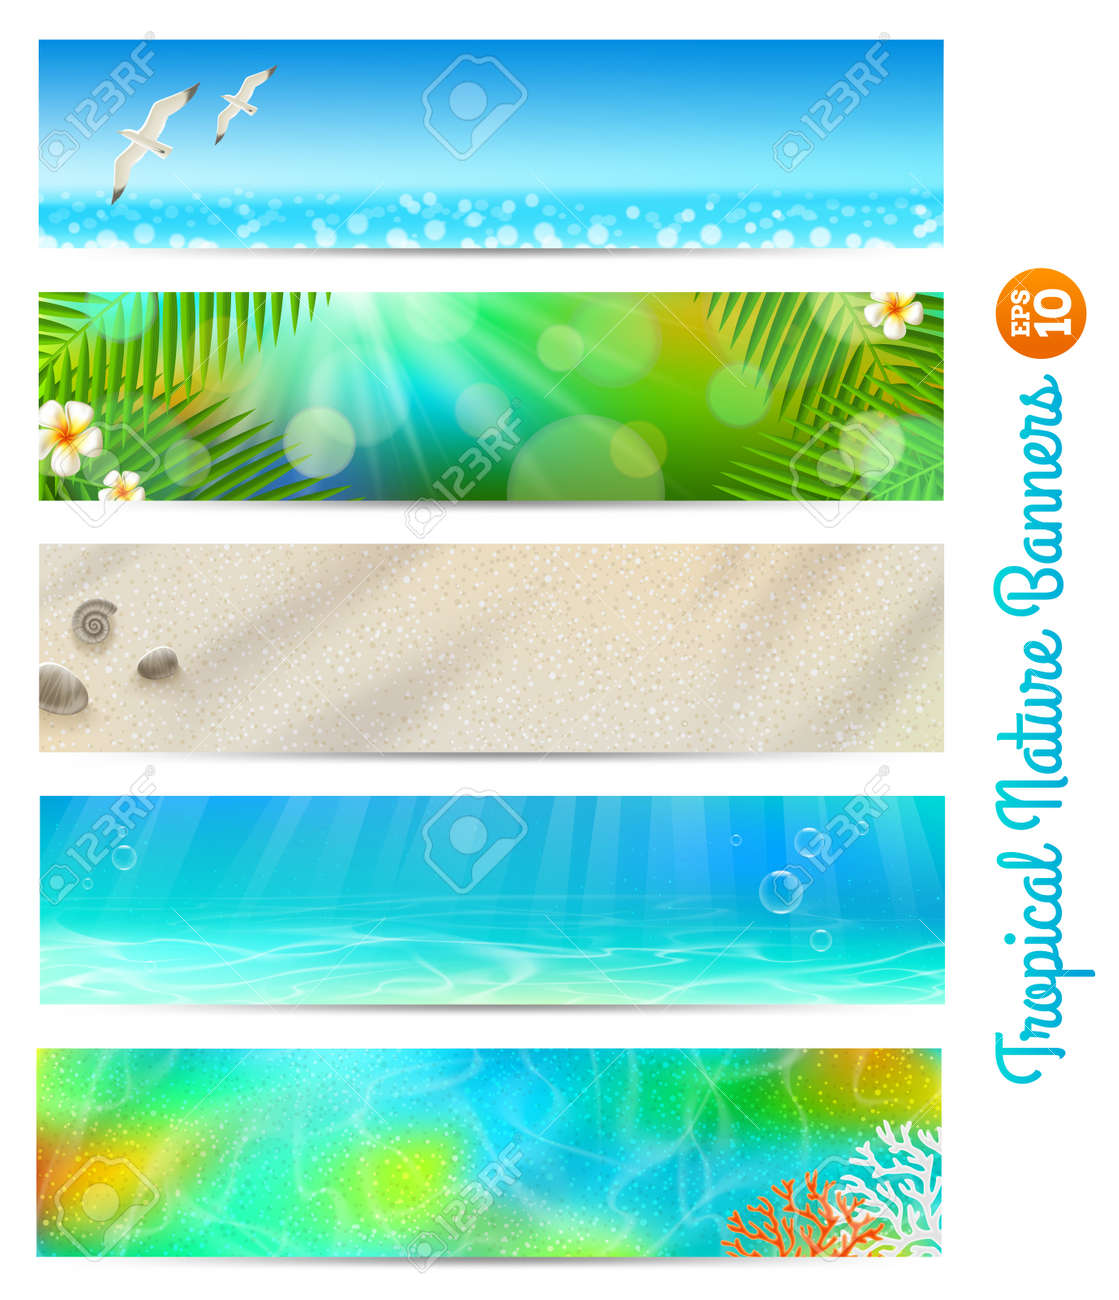 Travel and vacation banners with tropical natures Stock Vector - 19059089